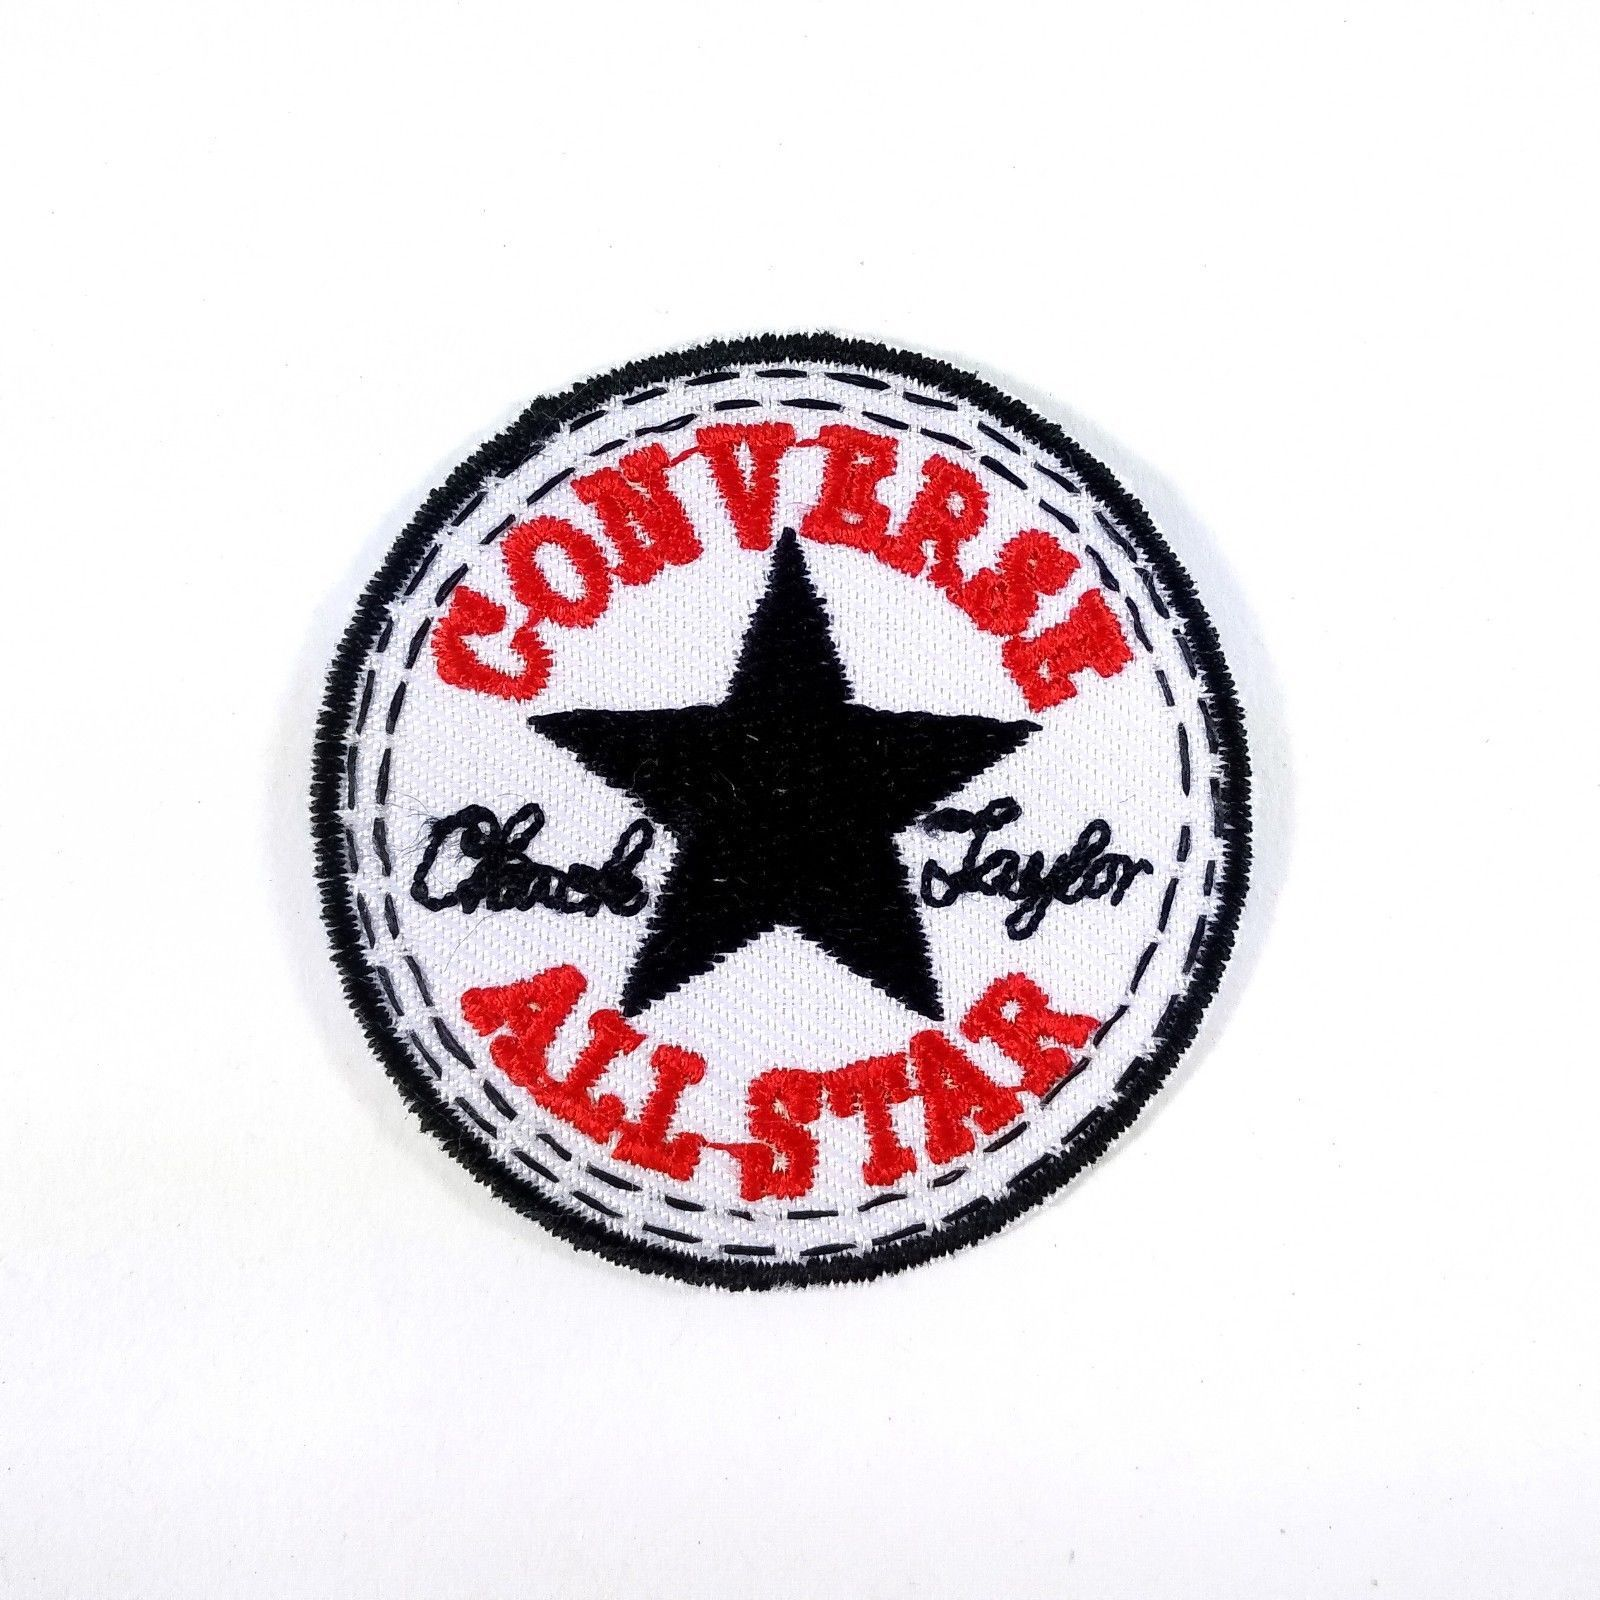 Embroidered Iron On Sew Patches Badge Applique transfers emblem Rock Good Ideas